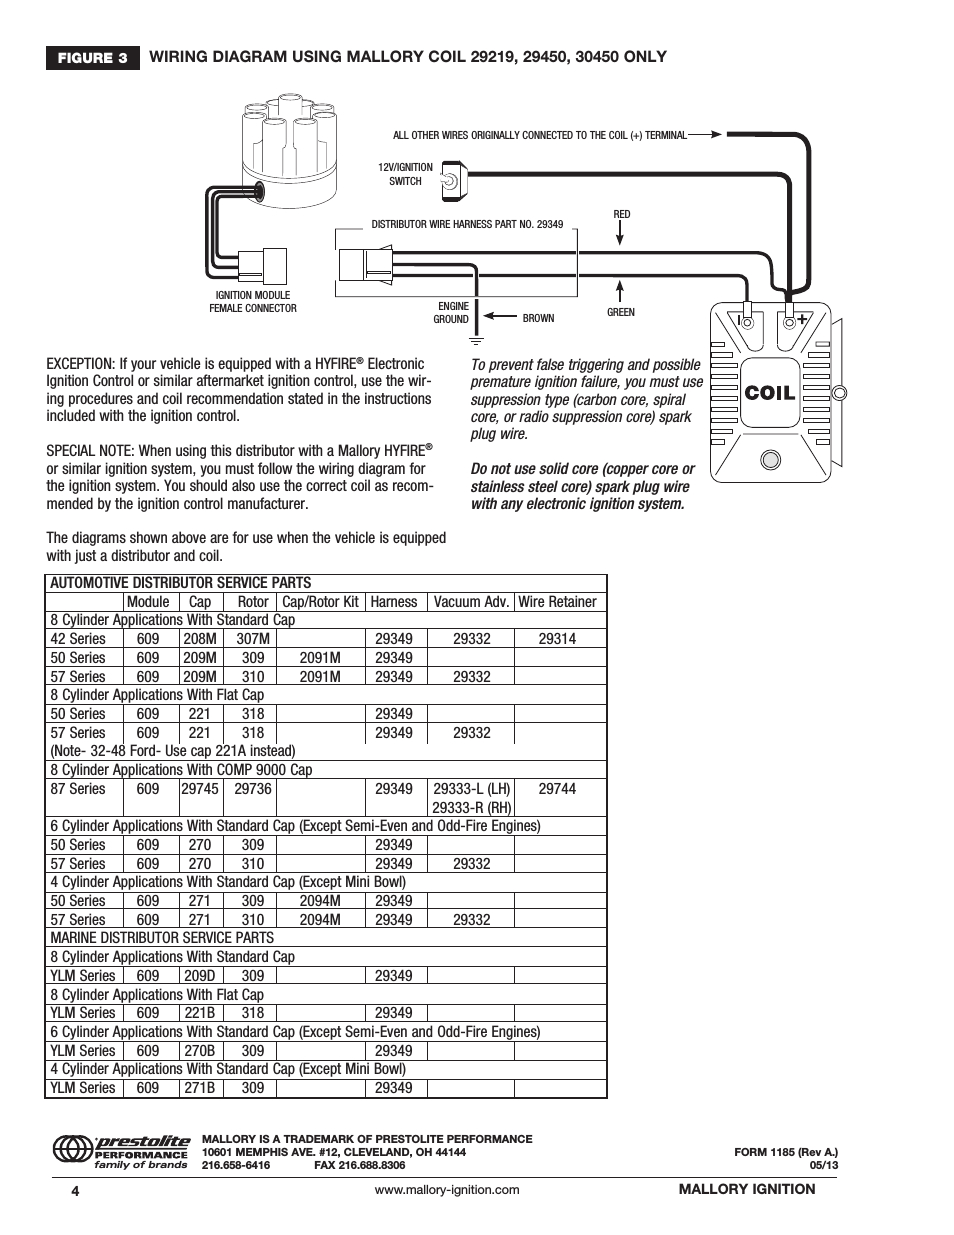 Mallory Magnetic Breakerless Wiring Diagram | Manual E-Books - Mallory Magnetic Breakerless Distributor Wiring Diagram